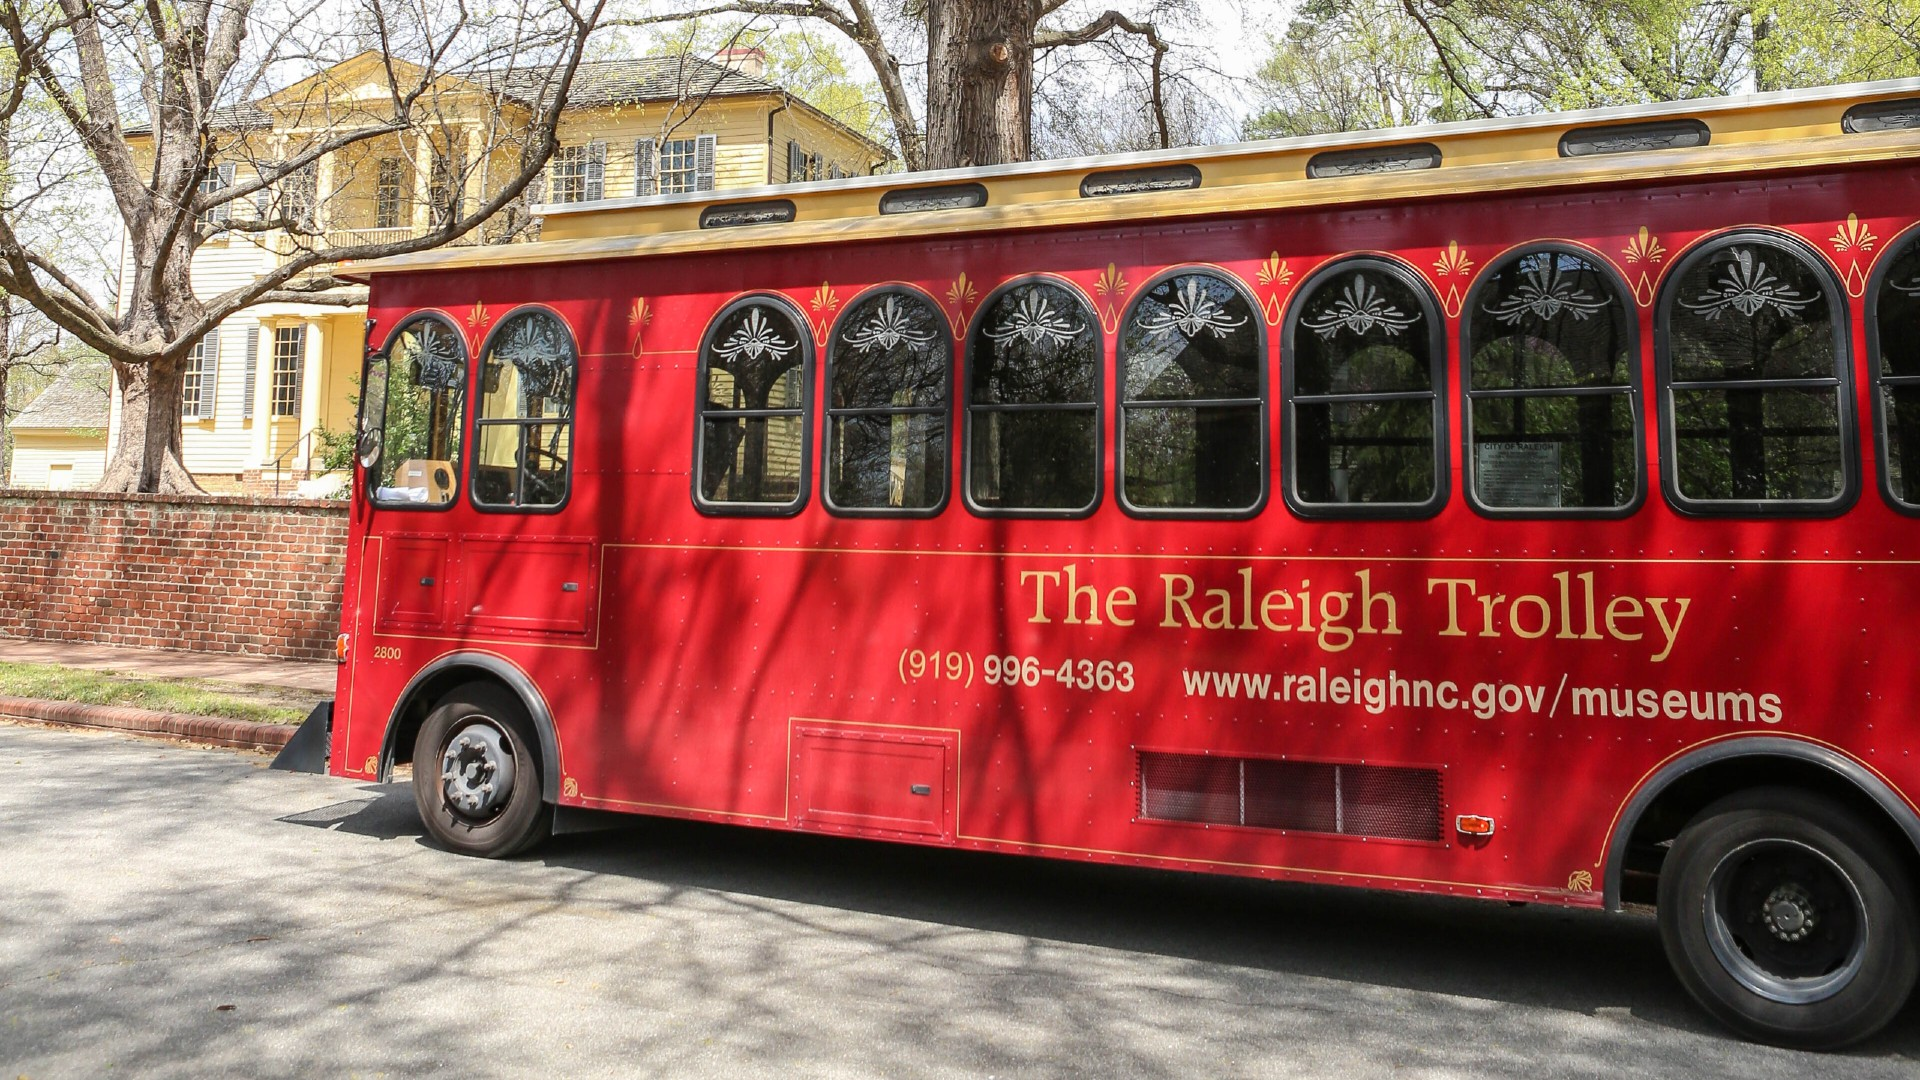 The historic red Raleigh Trolley